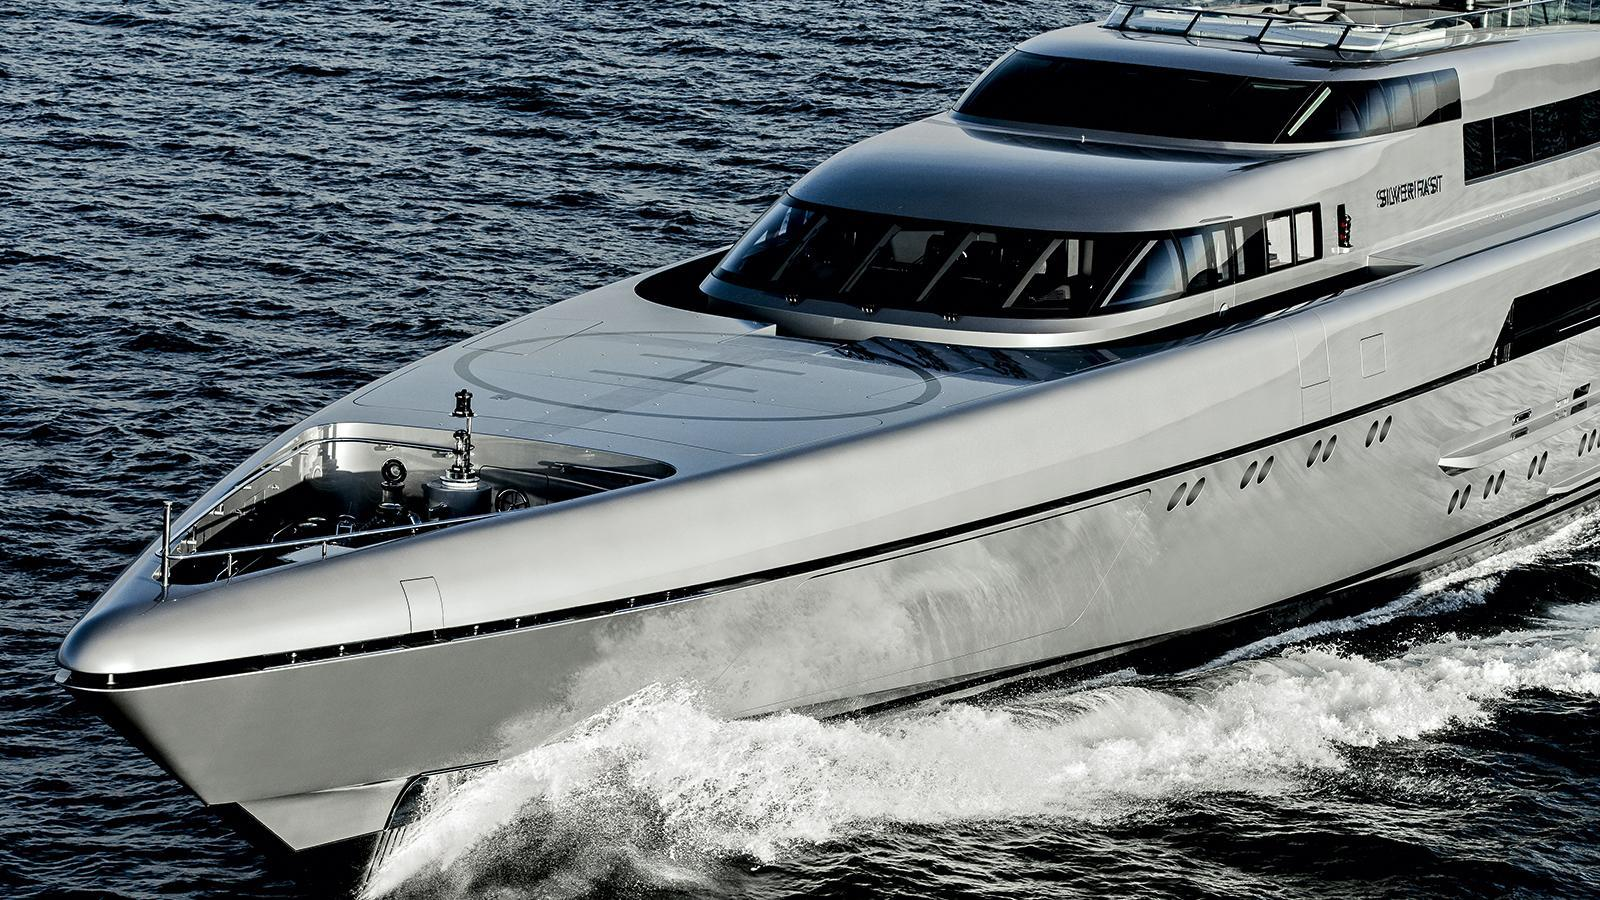 silver-fast-motor-yacht-2015-77m-cruising-bow